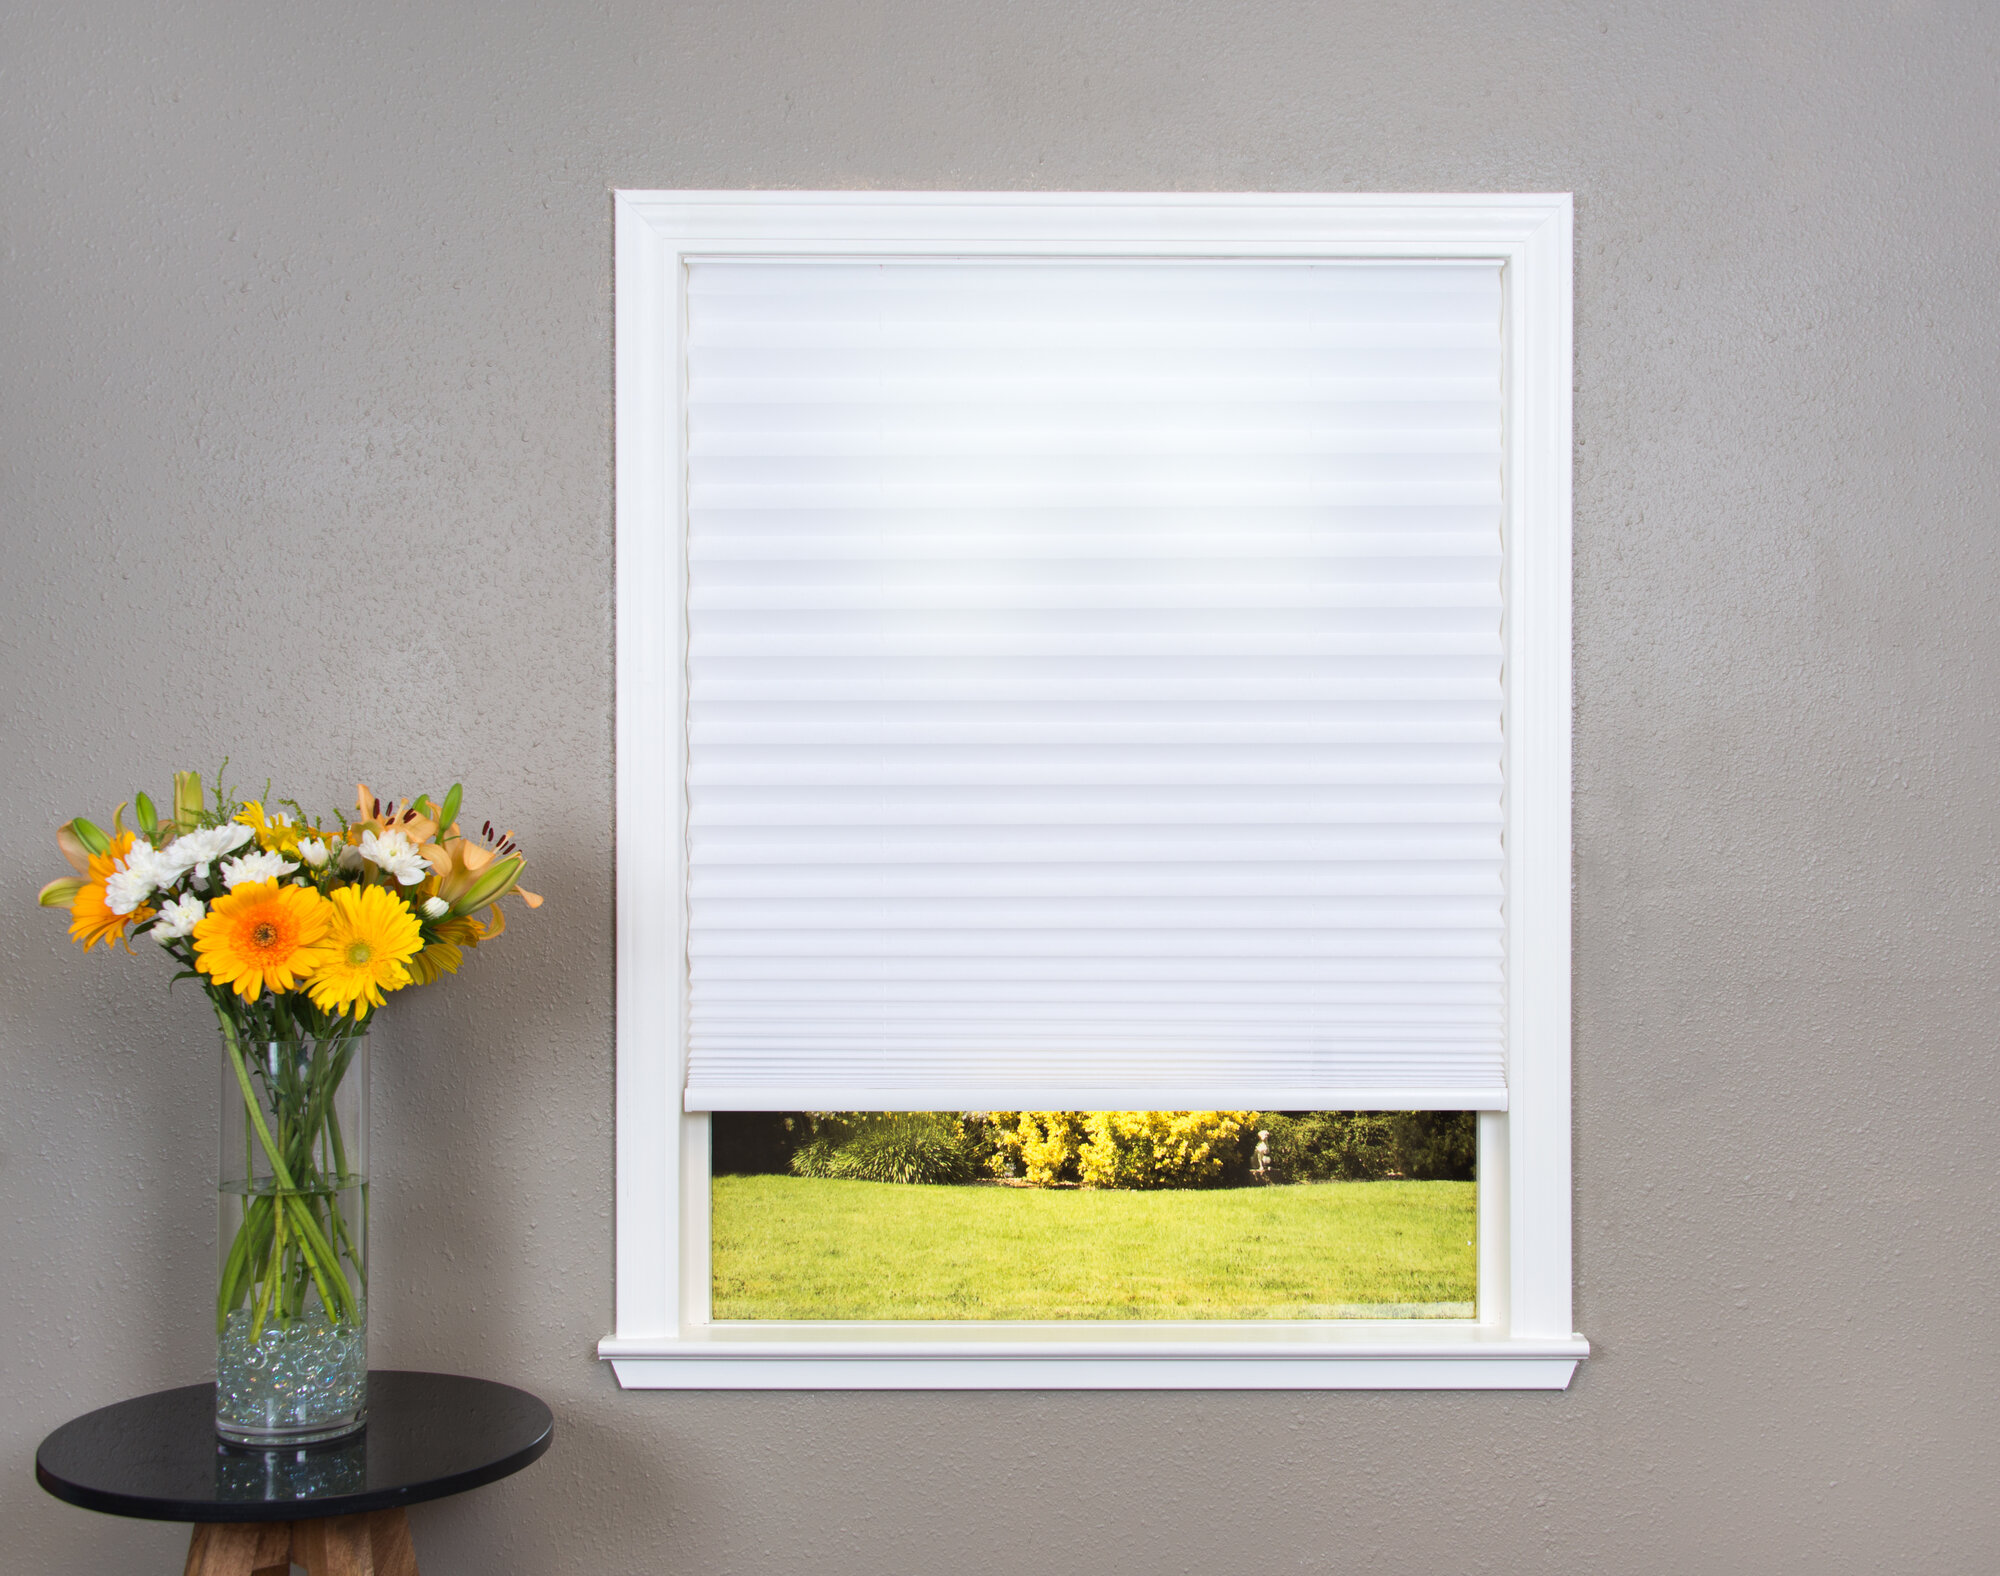 ideas cordless shades your window also roman appealing tips molding decor and cosy blinds paint interior atmosphere create treatment to with room